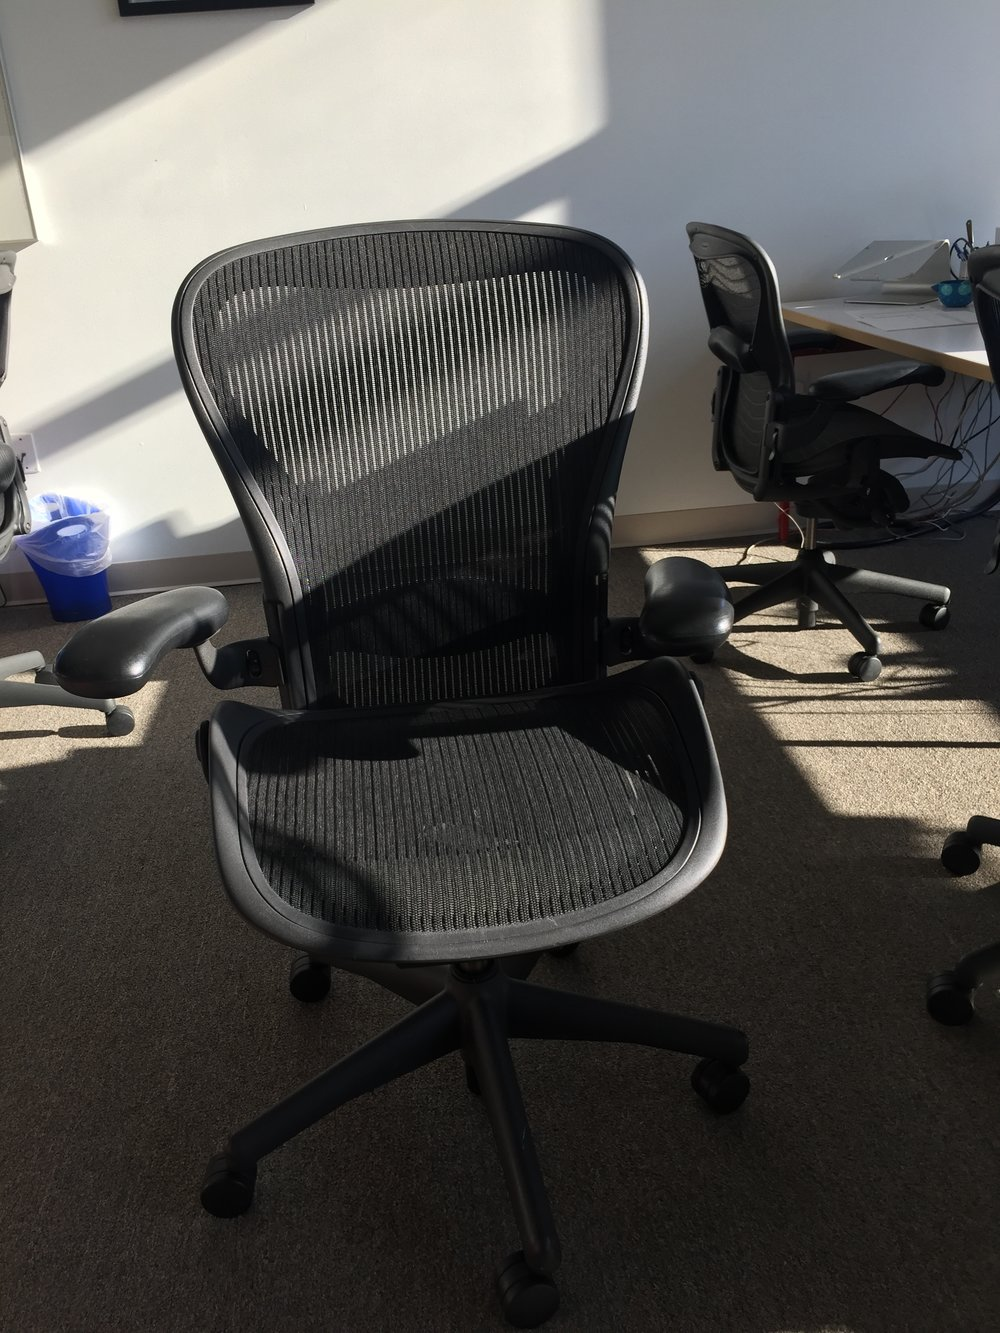 Herman Miller Aeron Chair - 5 available, Size B (most common size), $250 each